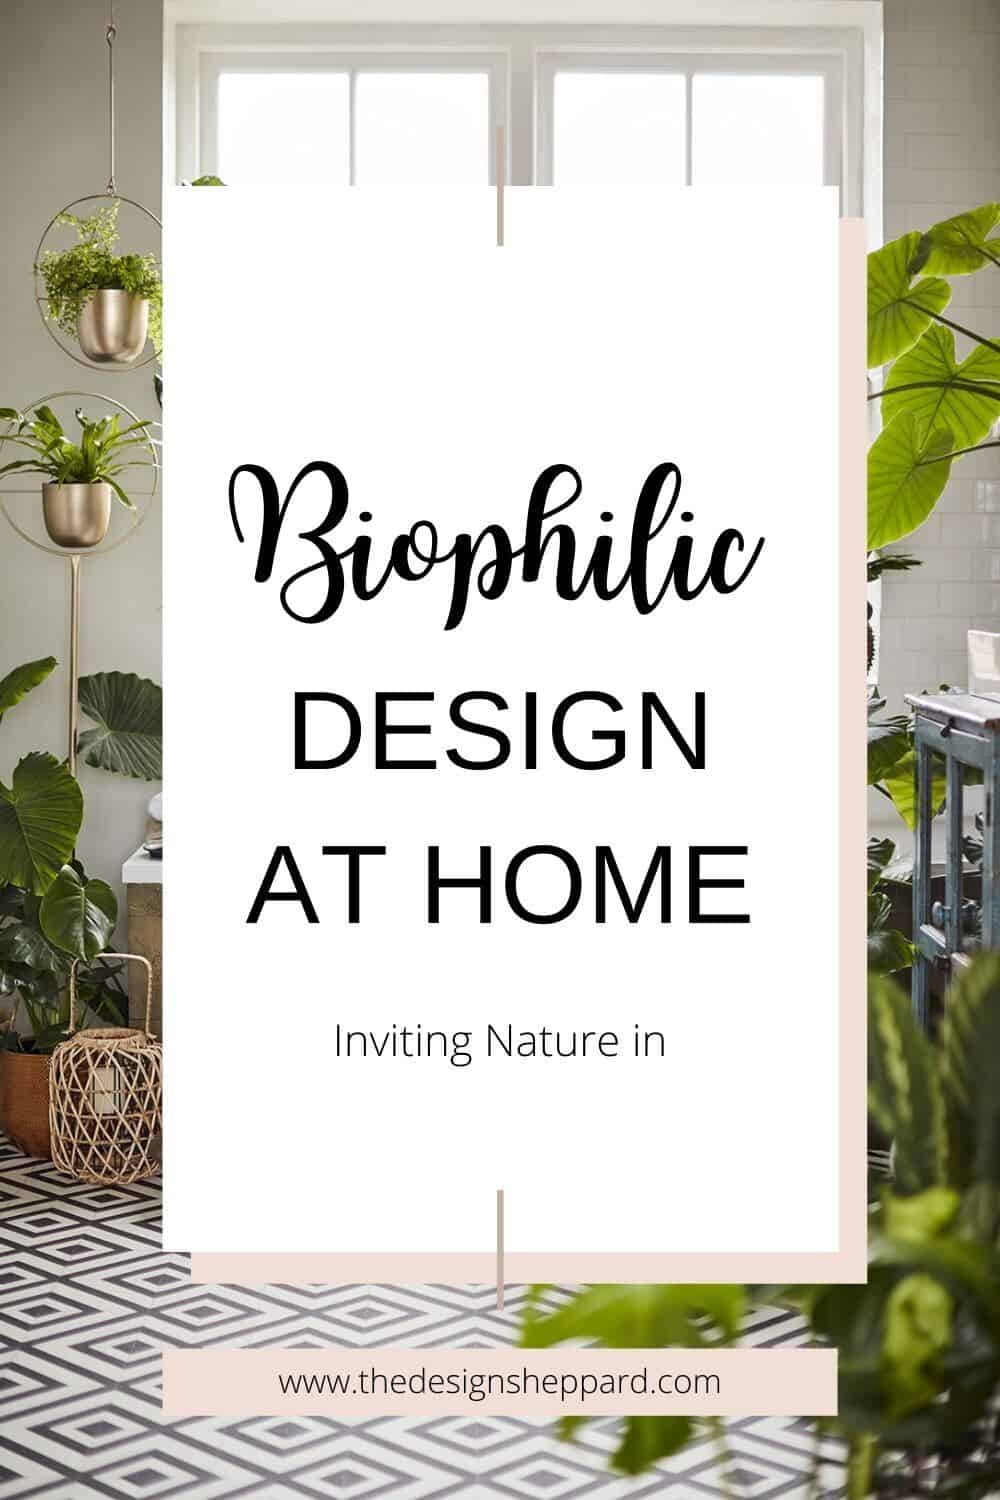 Bringing Natural Elements into the Home. Biophilic design